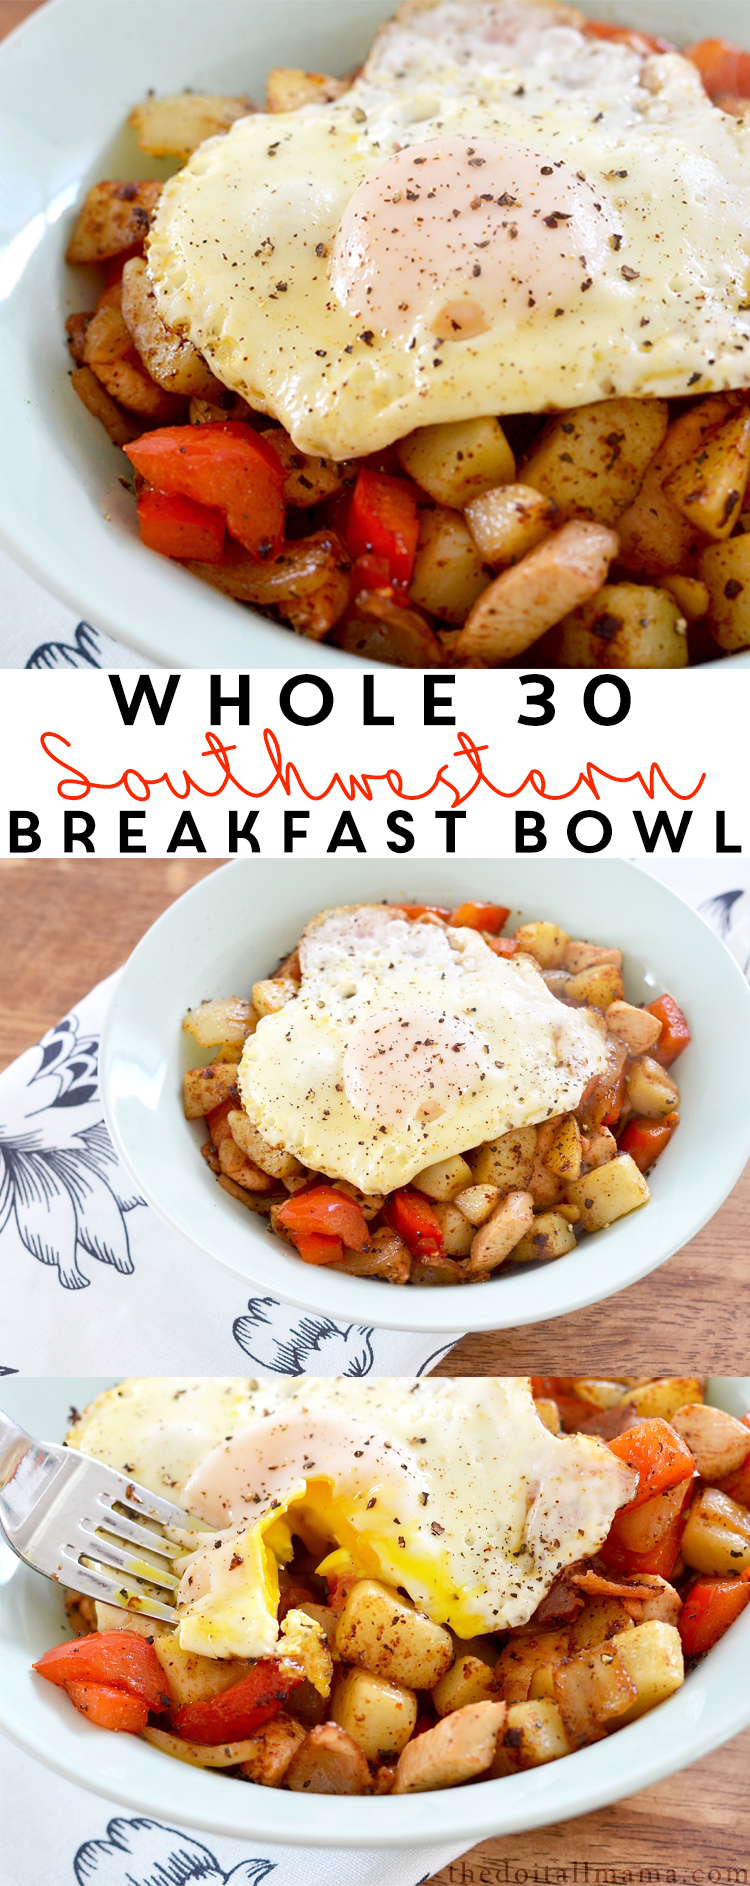 Healthy food doesn't have to be boring! Give this Whole 30 Friendly Southwestern Breakfast Bowl a try and start your day off with some kick.